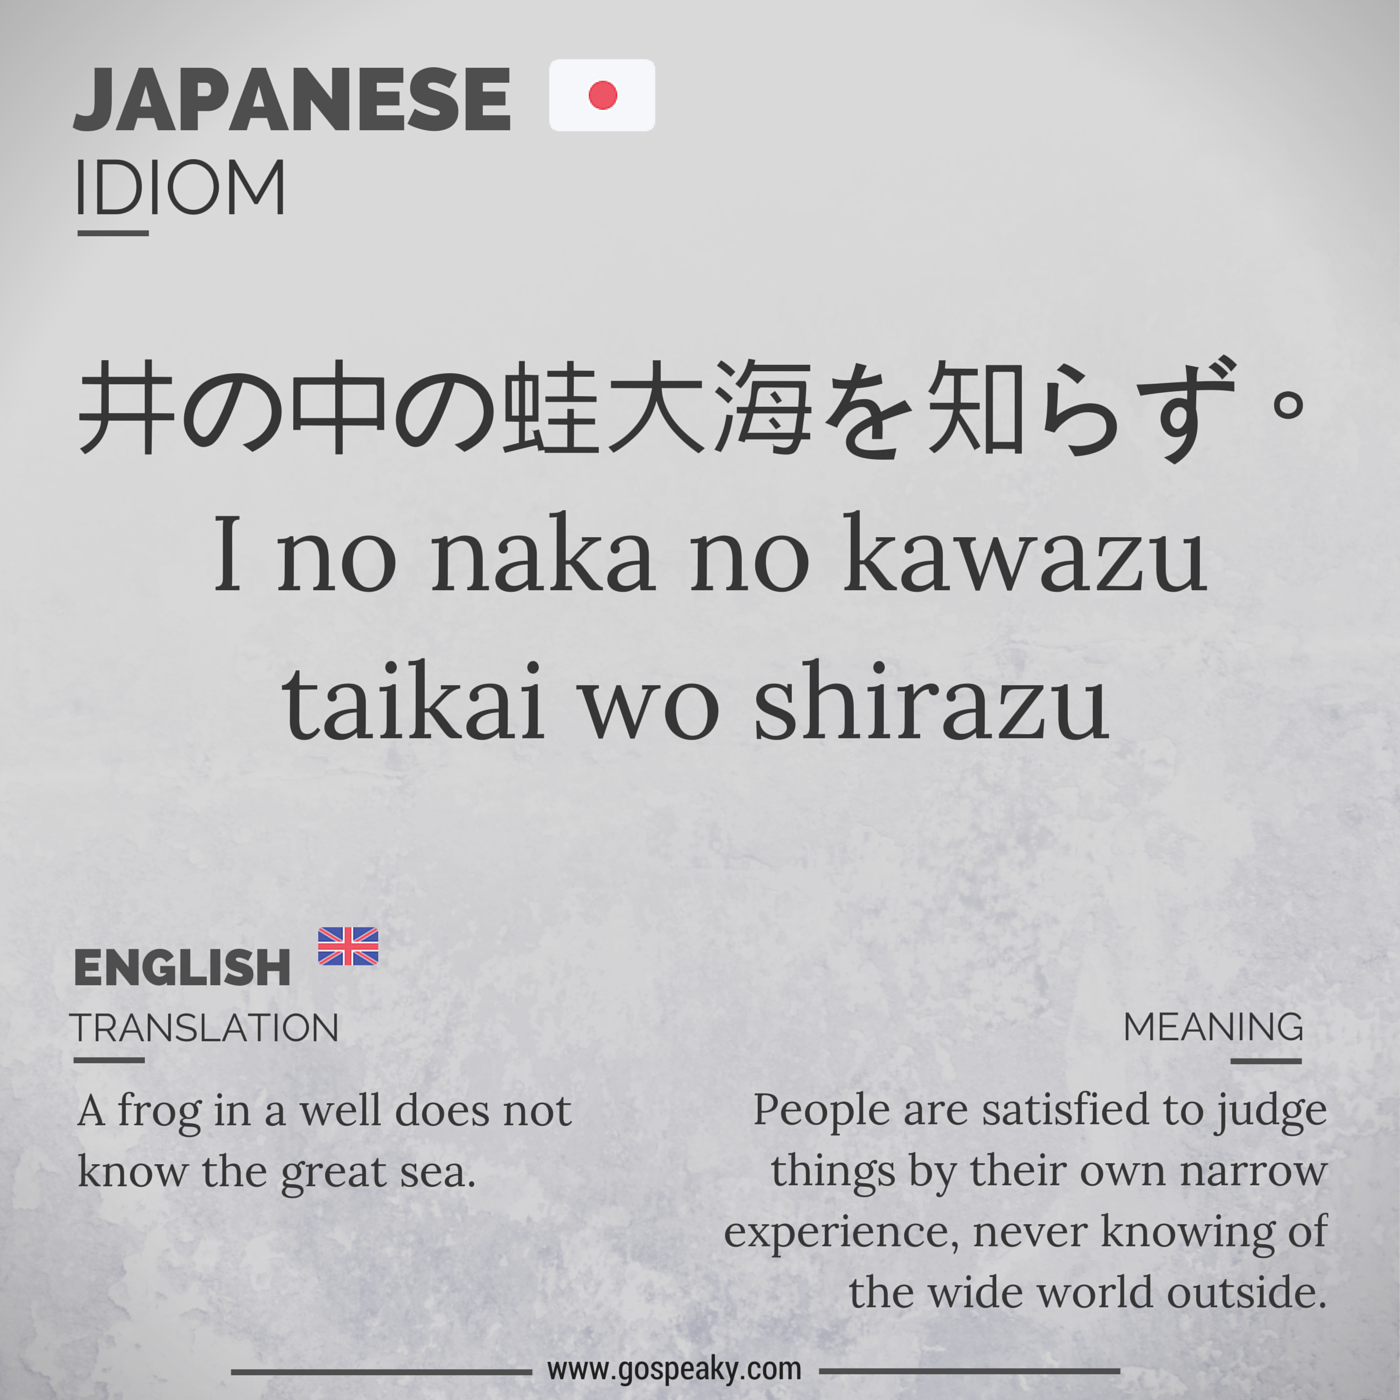 Japanese idiom - quote - proverb.